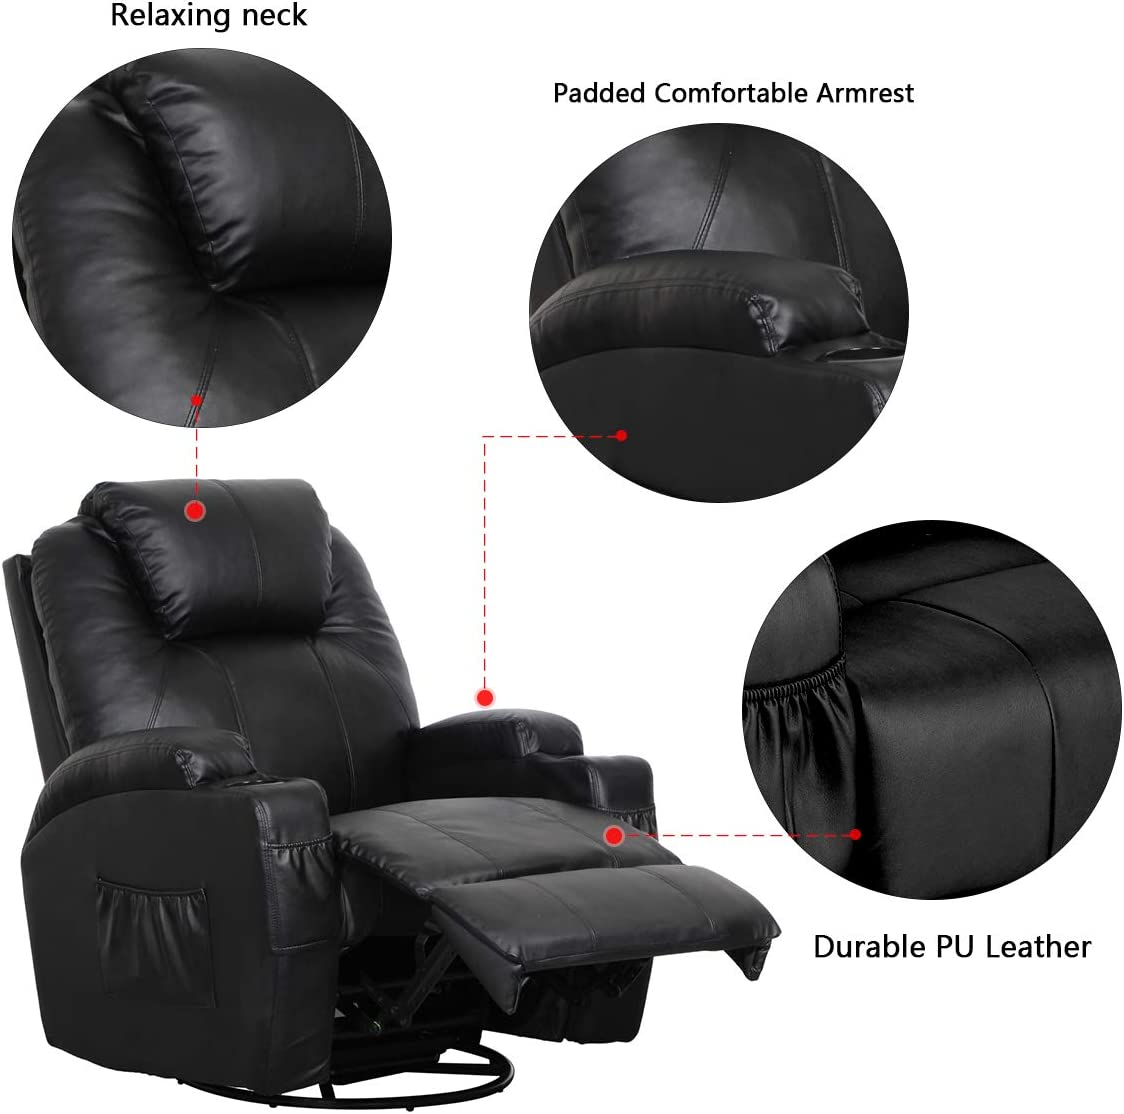 Esright Recliner Lounge Chair padded armrest with durable leather